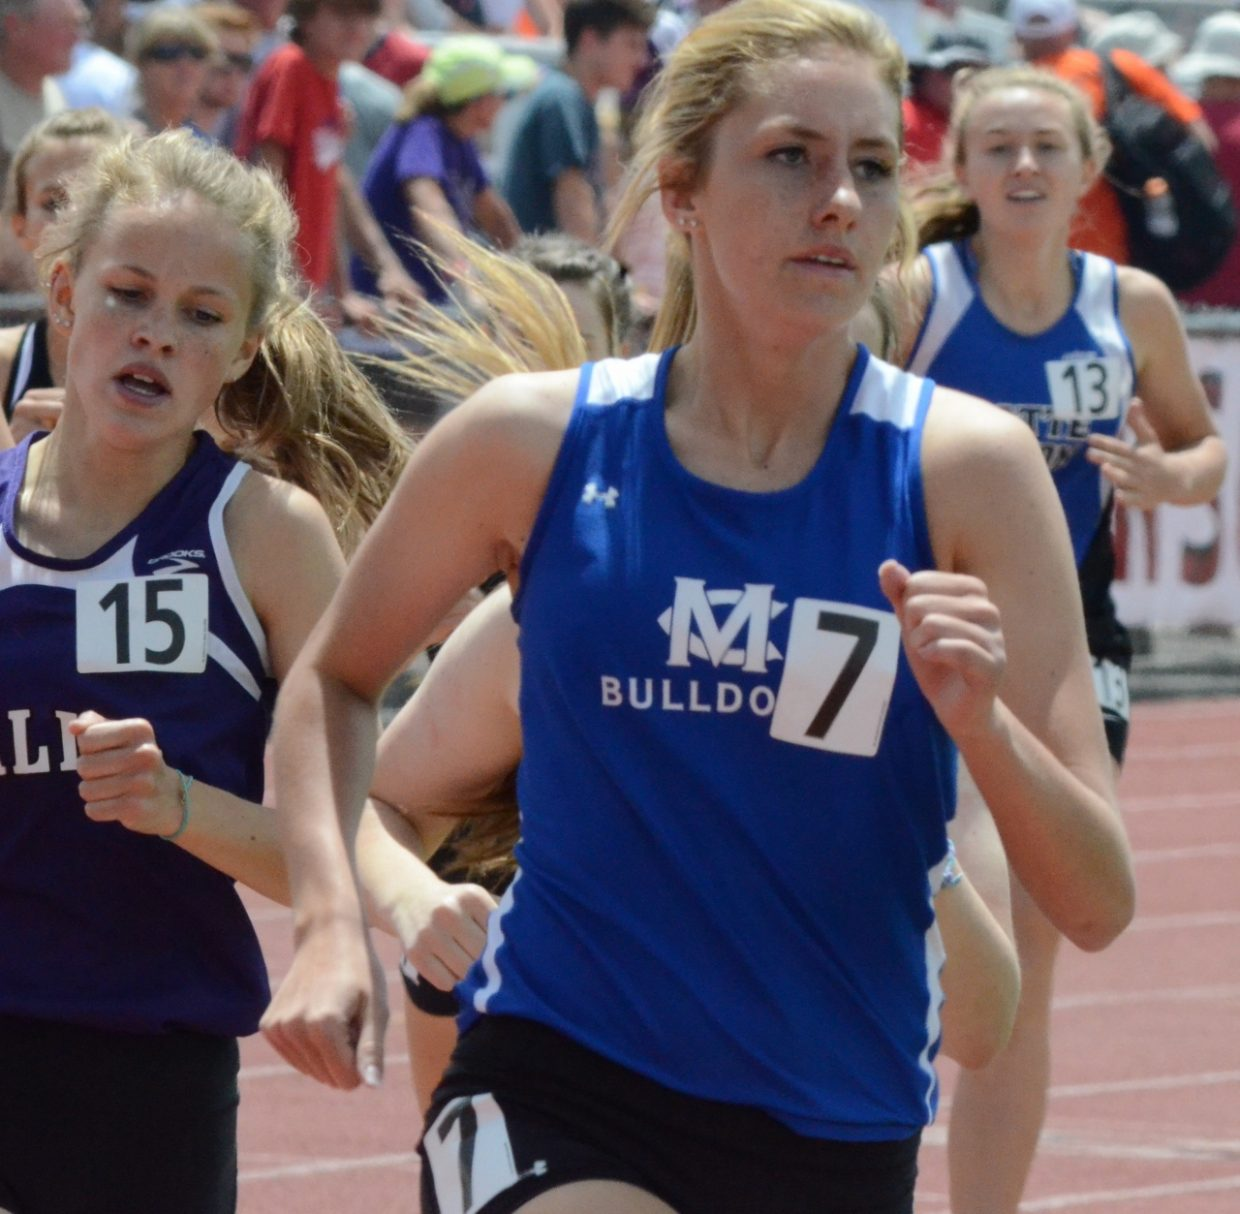 Moffat County High School's Mattie Jo Duzik rounds a corner in the 3A State Track and Field Championships. Duzik placed seventh in the girls 800-meter run and will compete in the 1600 Saturday.